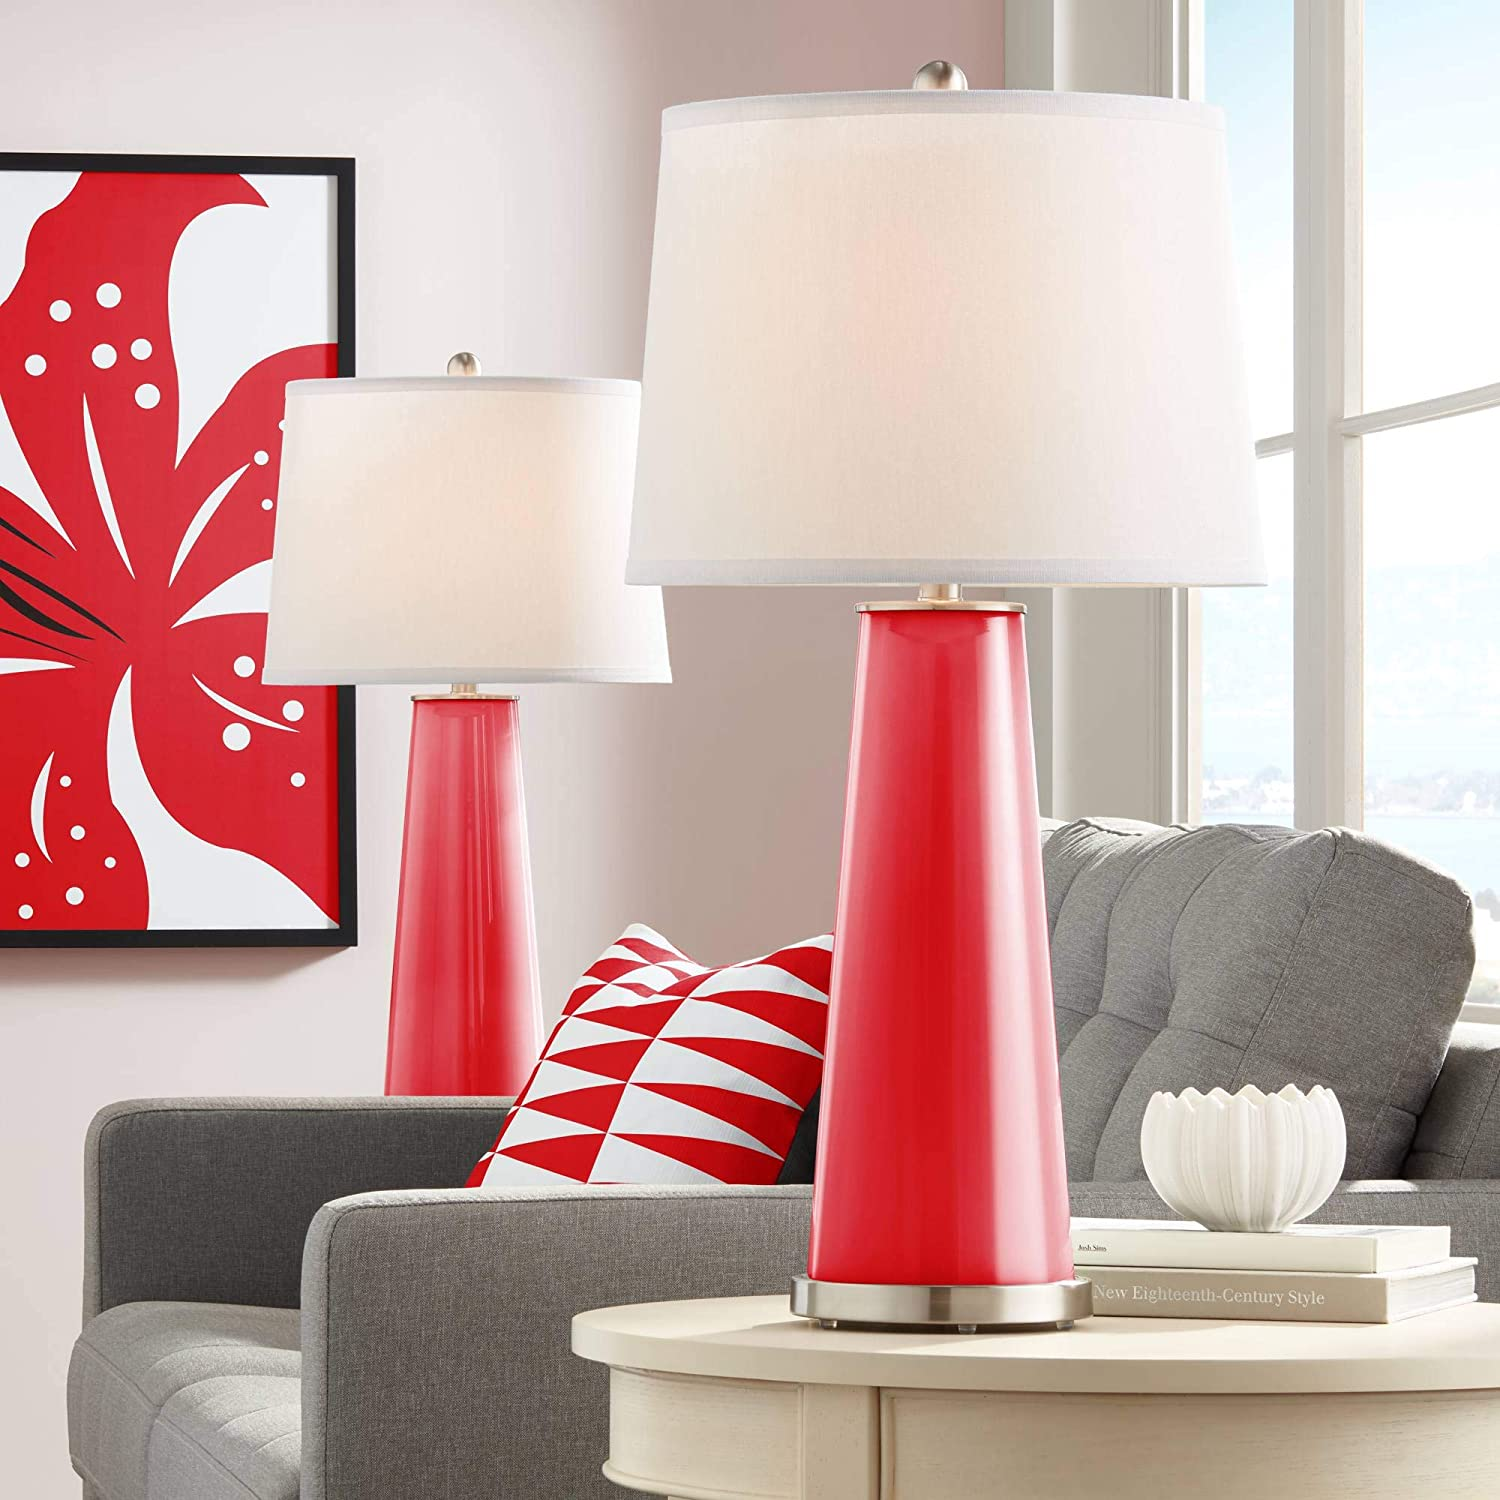 Leo Modern Contemporary Table Lamps Set Of 2 Bright Red Glass Tapered Column Plain White Drum Shade Decor For Living Room Bedroom House Bedside Nightstand Home Office Family Color Plus Amazon Com